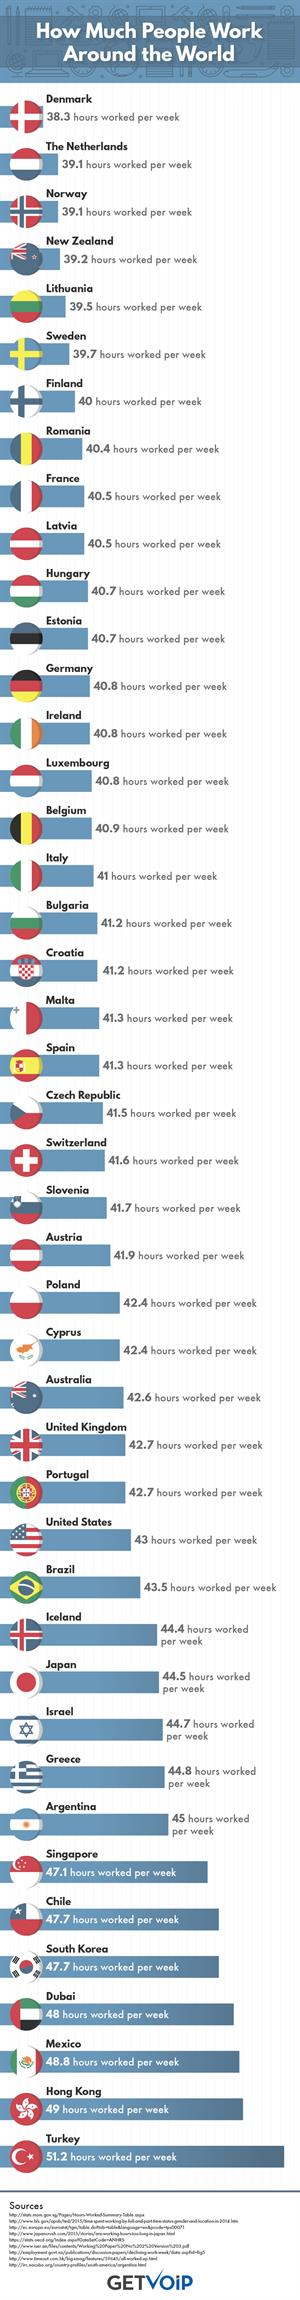 Which Countries Work The Longest Hours? Horas de Trabajo y productividad (GetVoid)